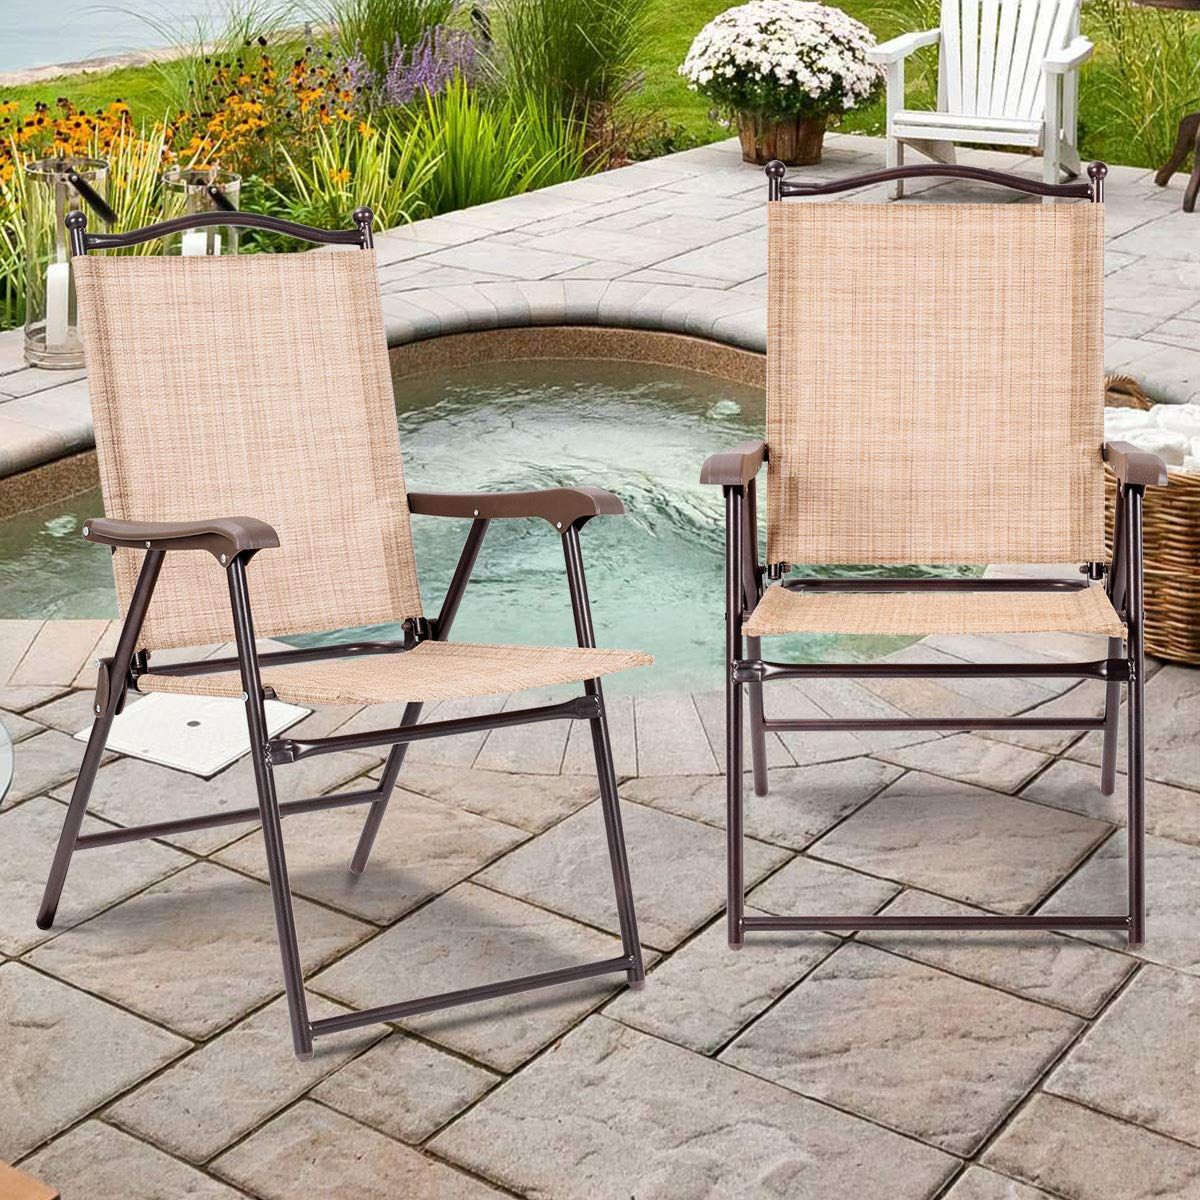 Giantex Set of 4 Folding Sling Back Chairs Indoor Outdoor